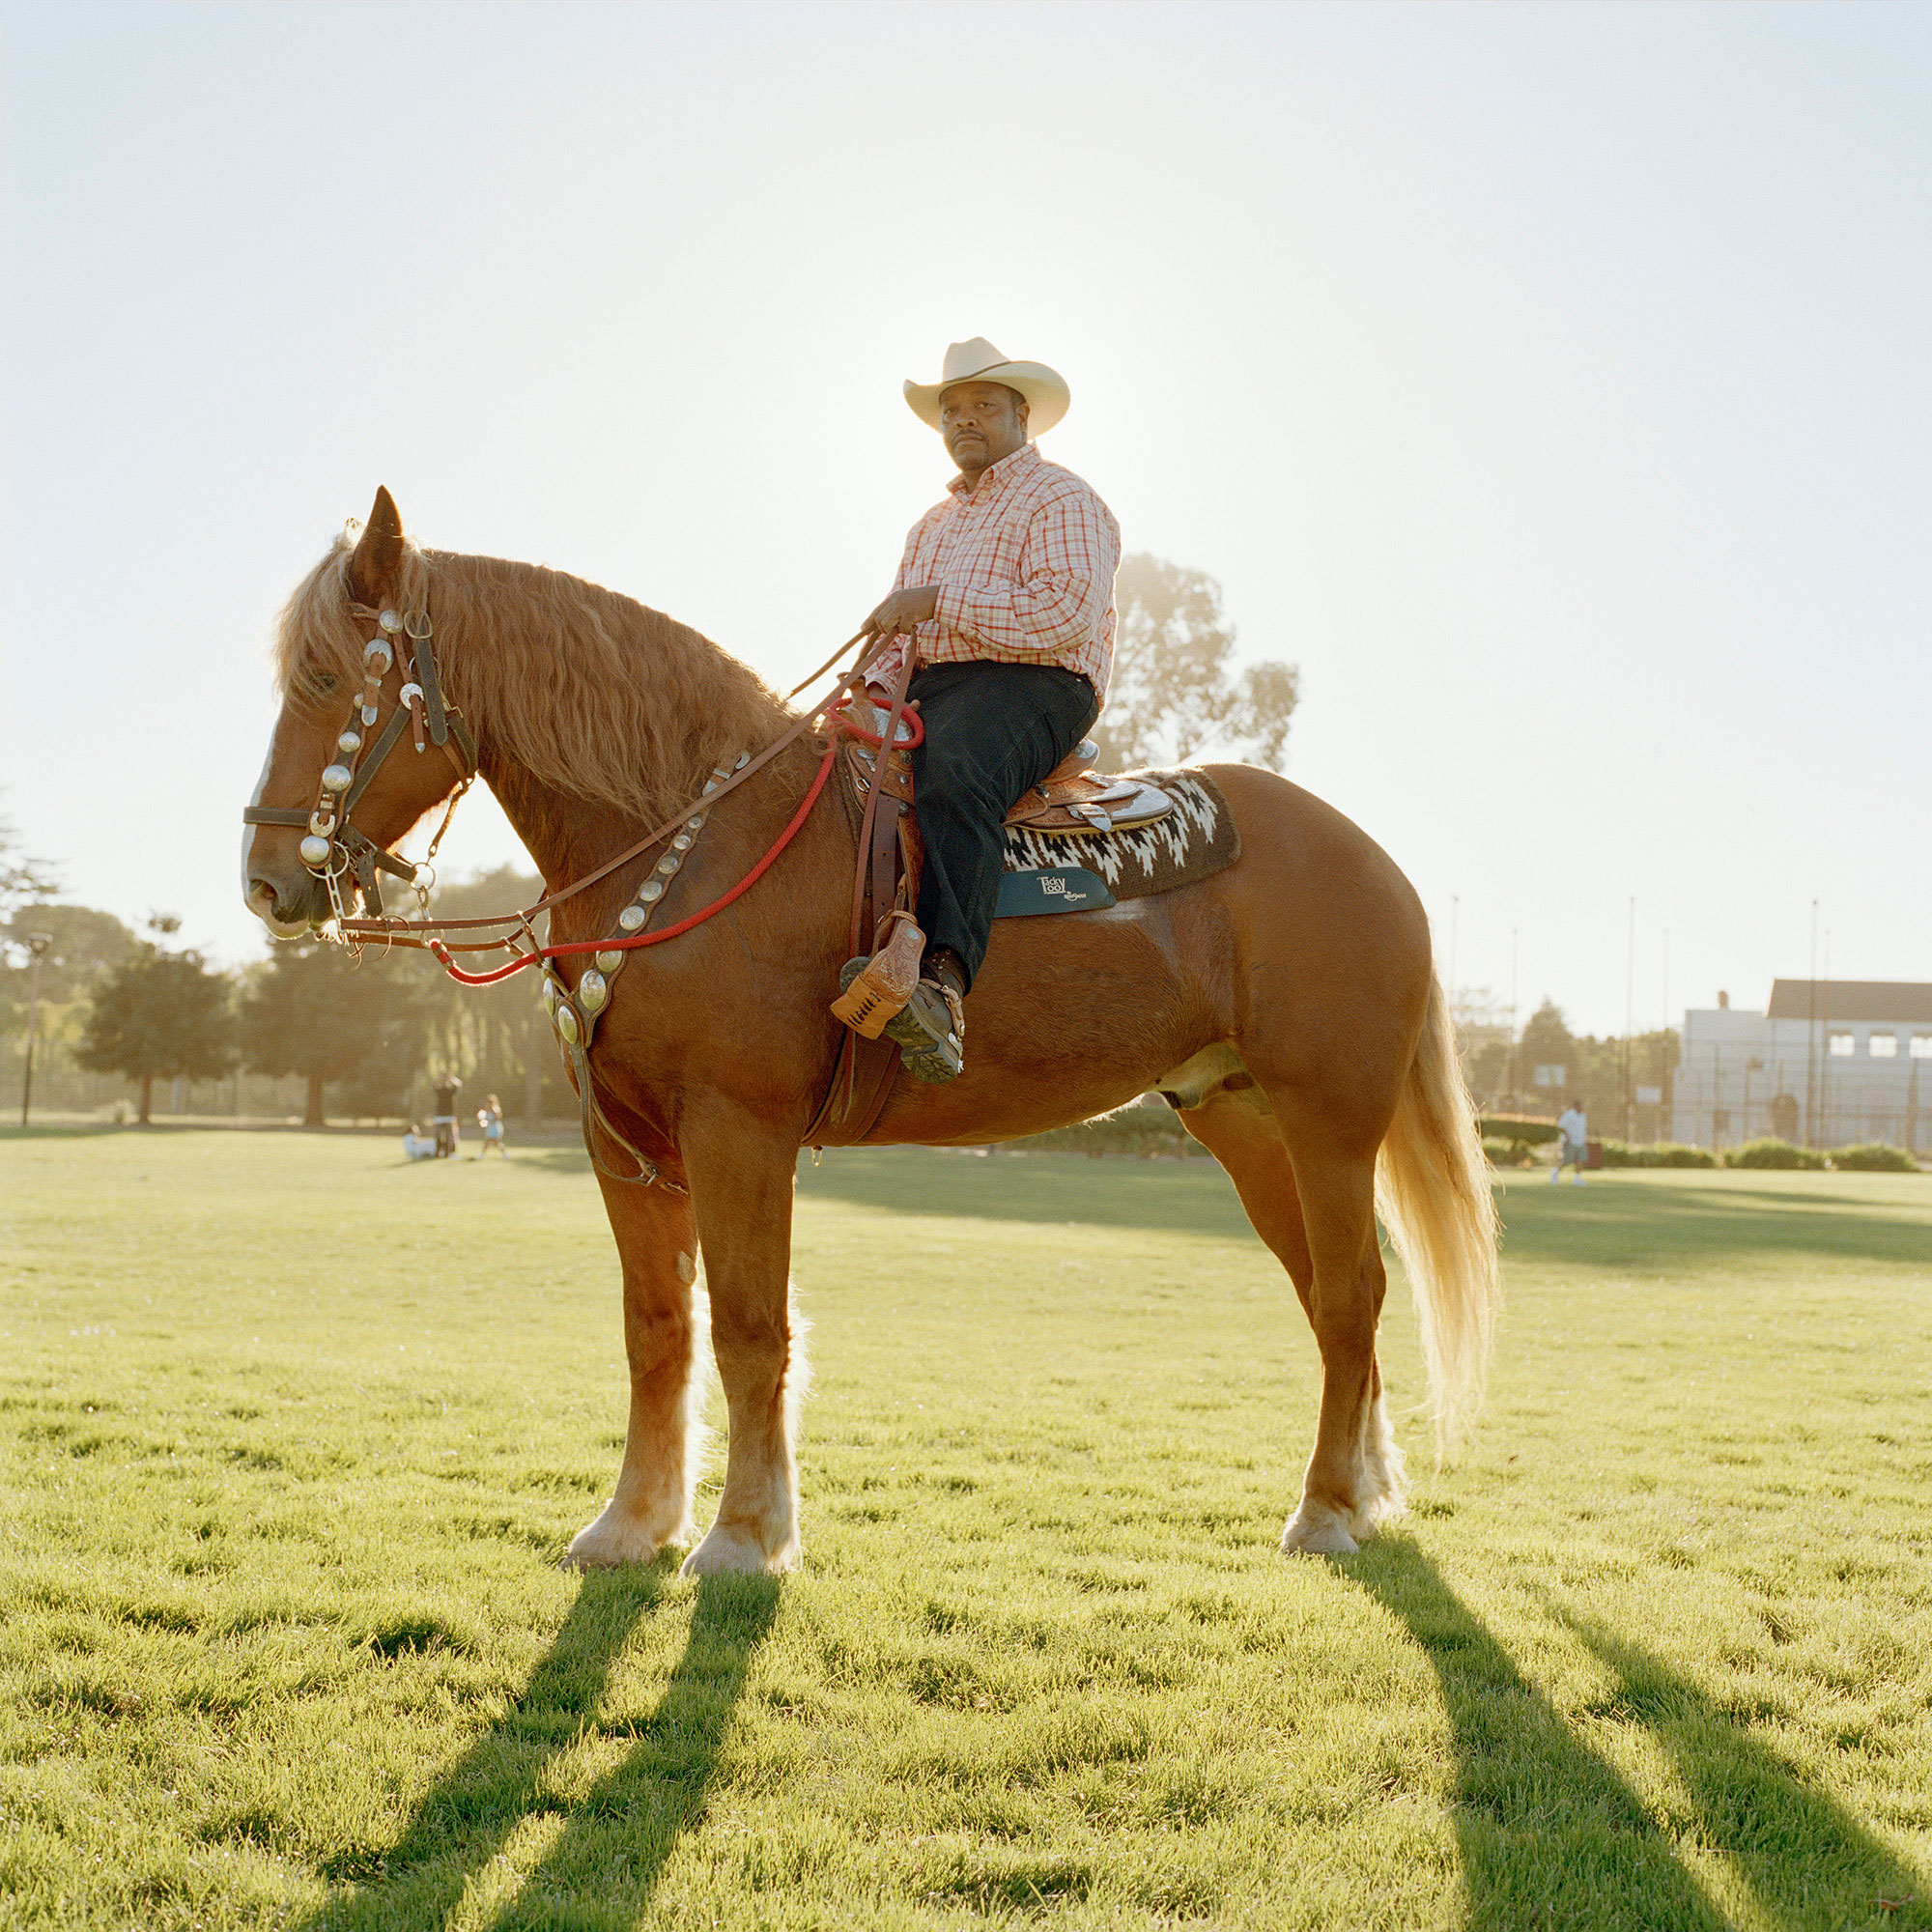 Urban Cowboy, from the series  There is Nothing Beautiful Around Here.  Richmond, Calif. 2010.